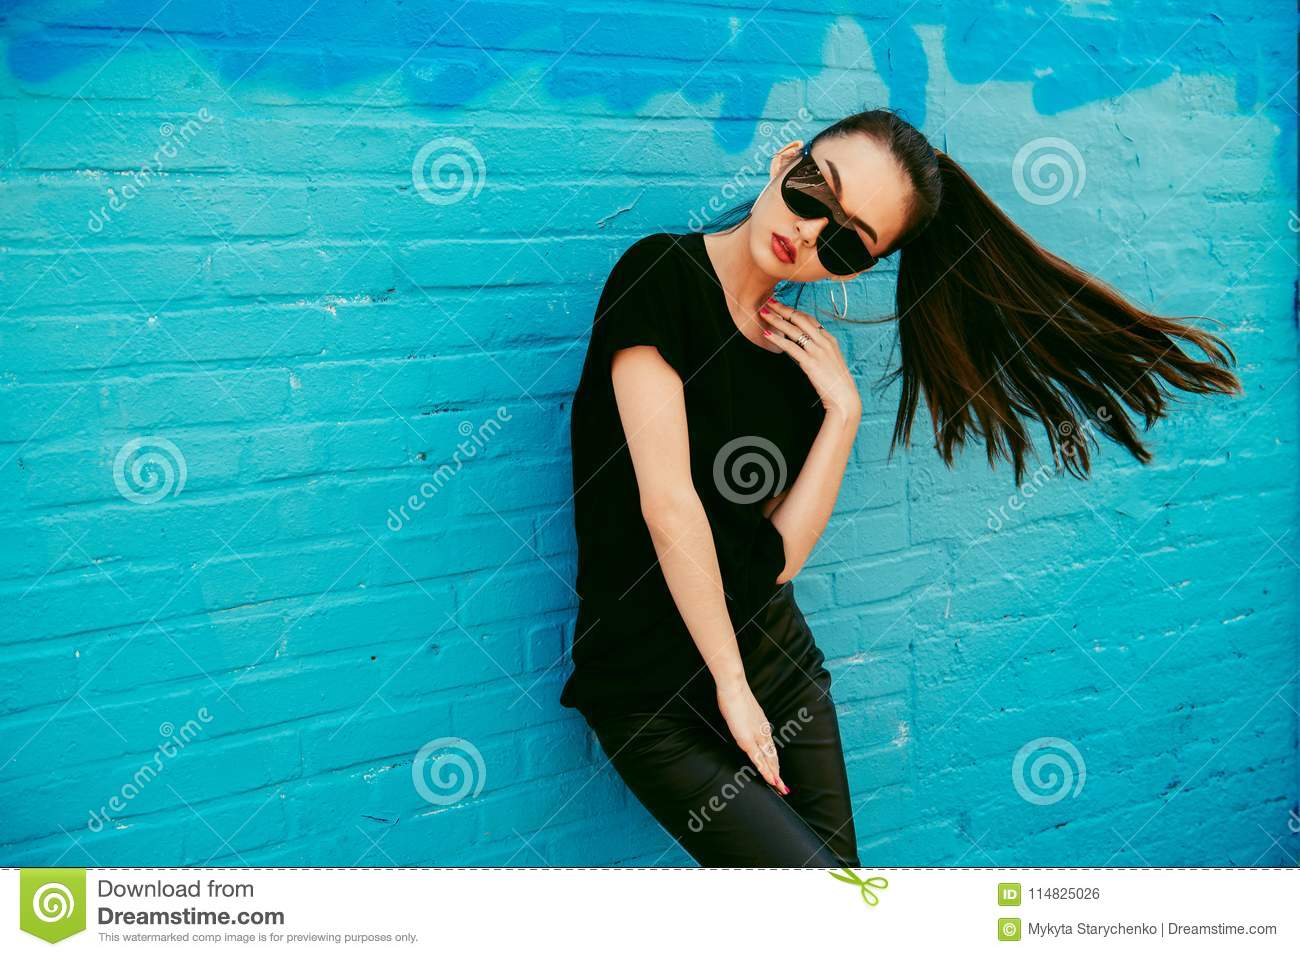 Beautiful young asian girl with long hair wearing sunglasses and black t-shirt posing in front of blue wall.